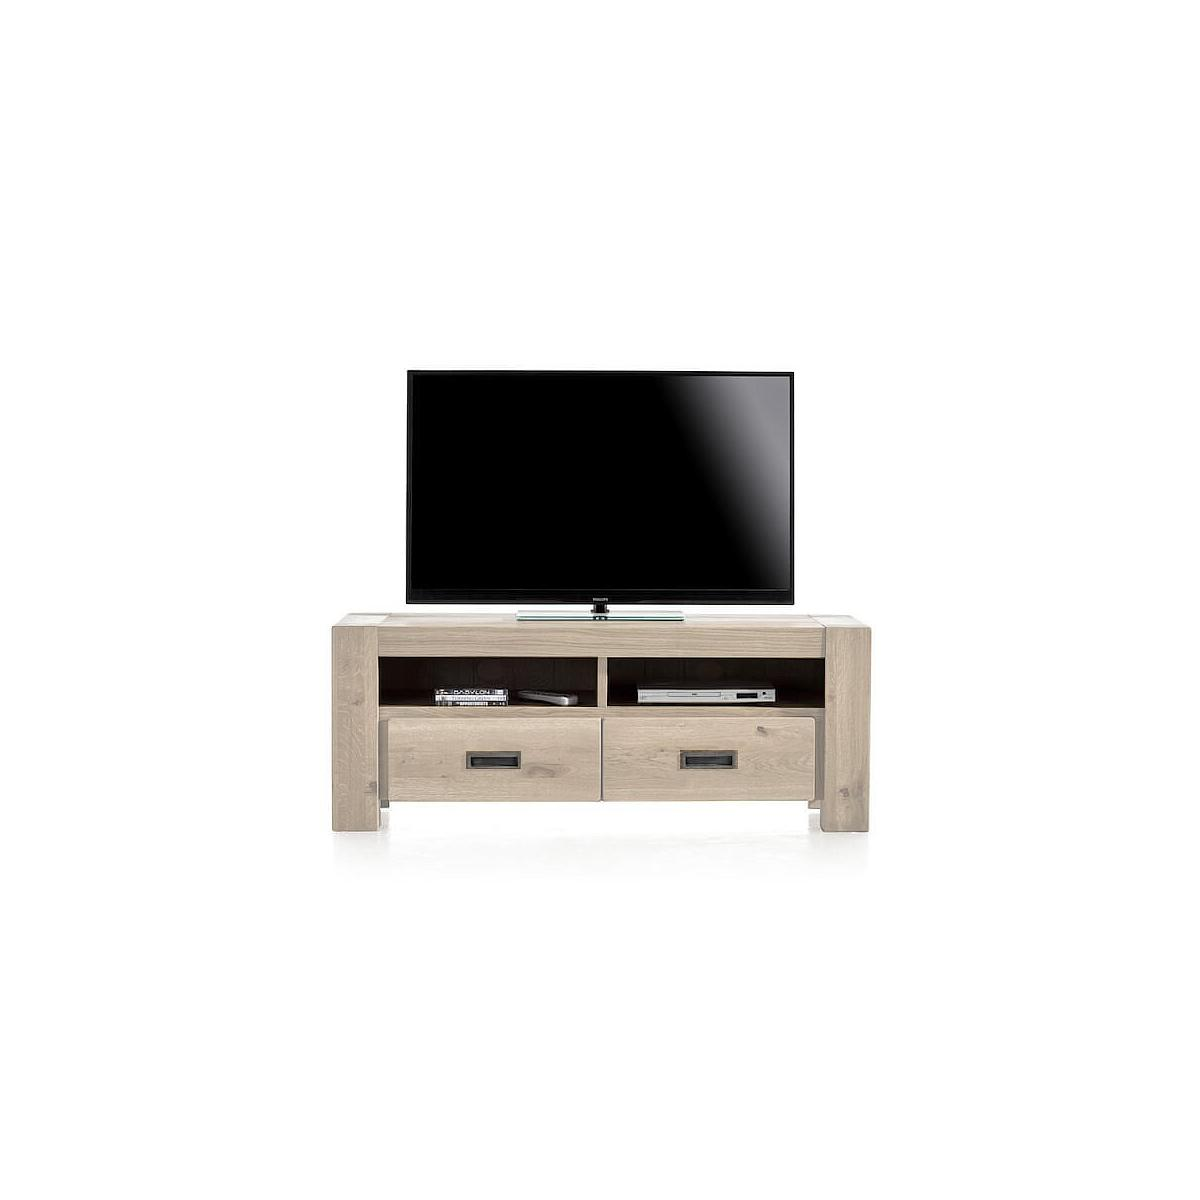 Meuble TV 140cm SANTORINI Henders & Hazel castle white